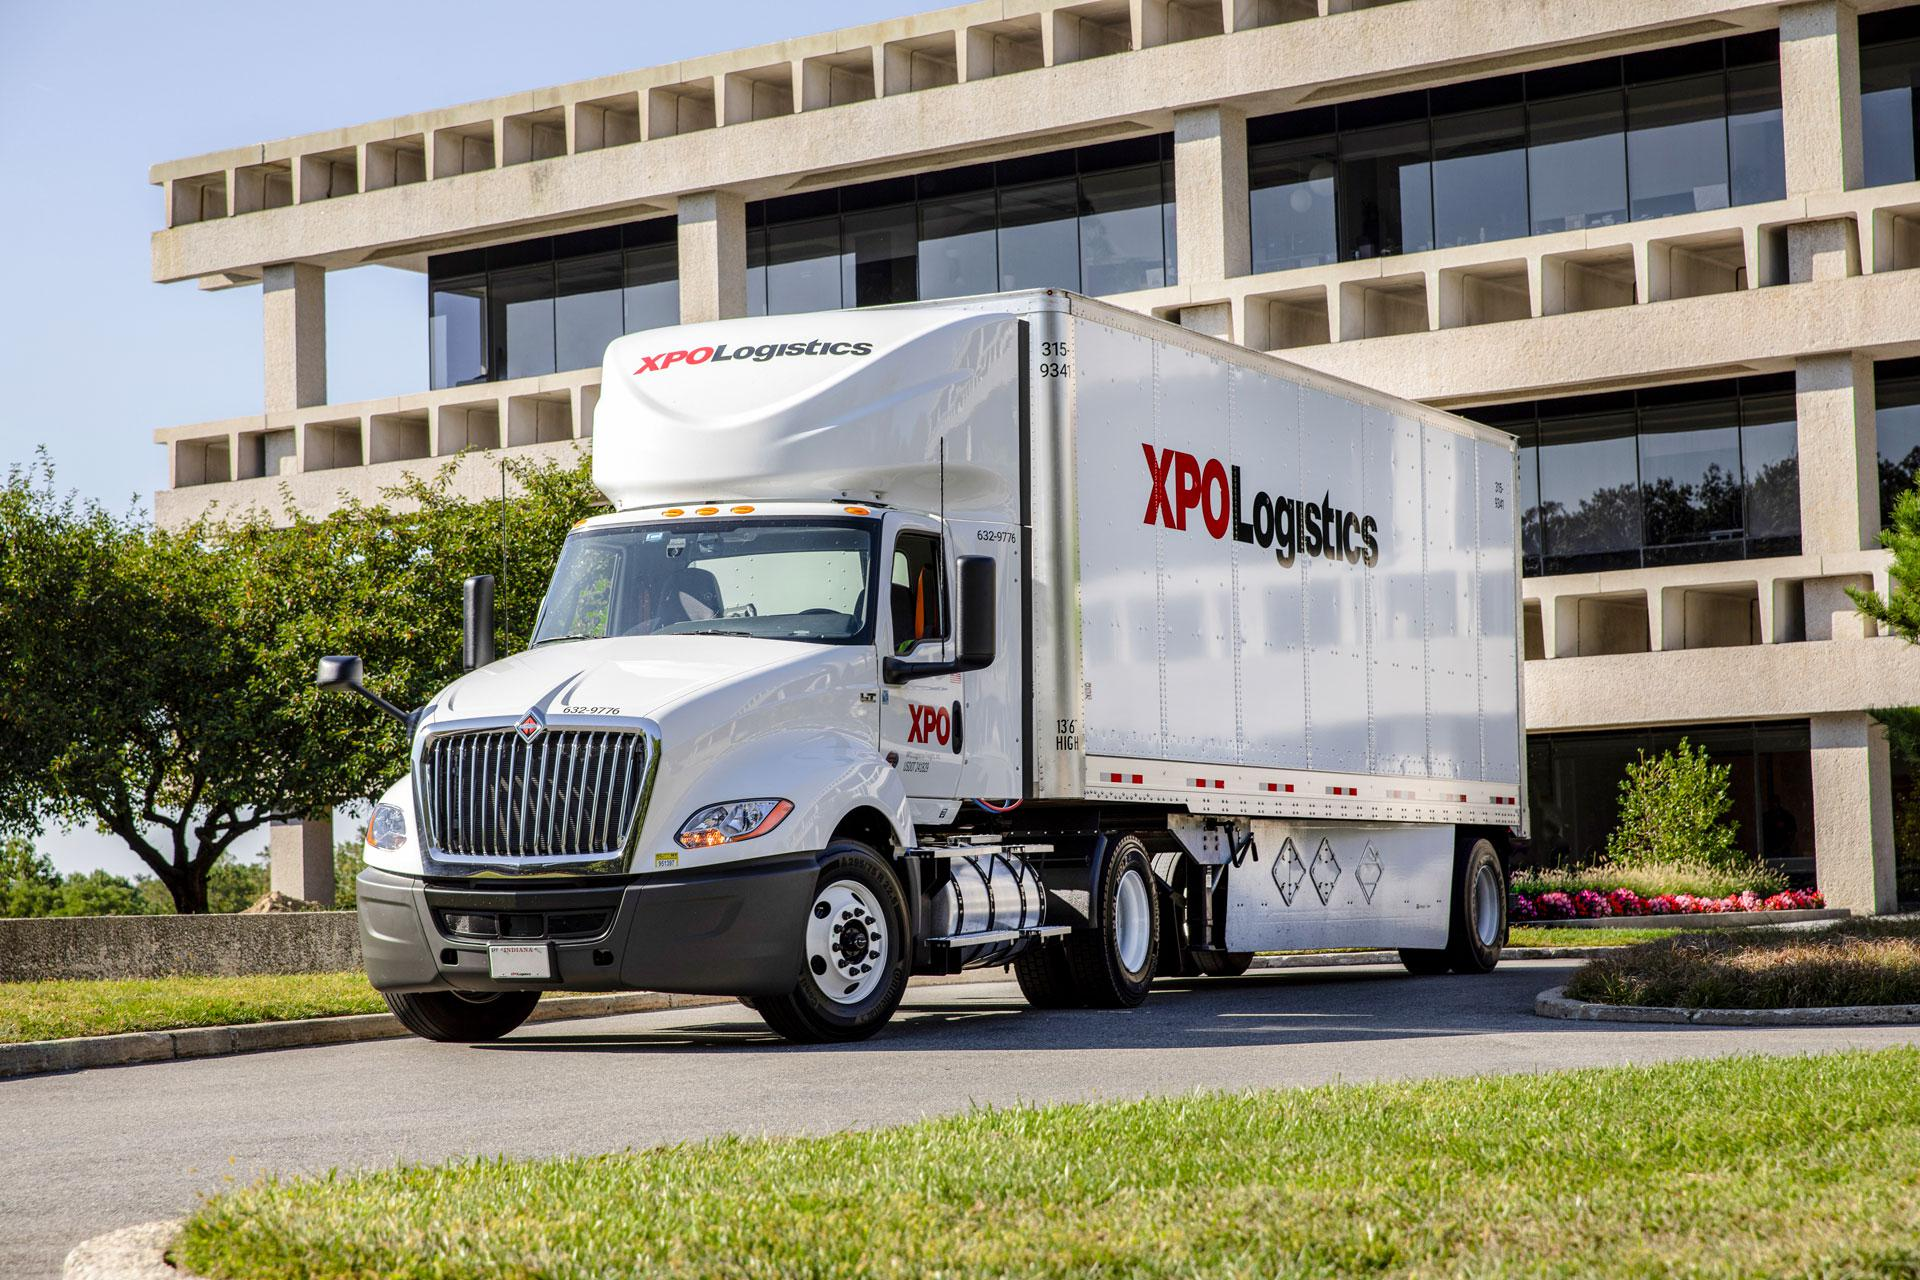 An XPO LTL tractor-trailer, parked in front of XPO's Greenwich, CT headquarters